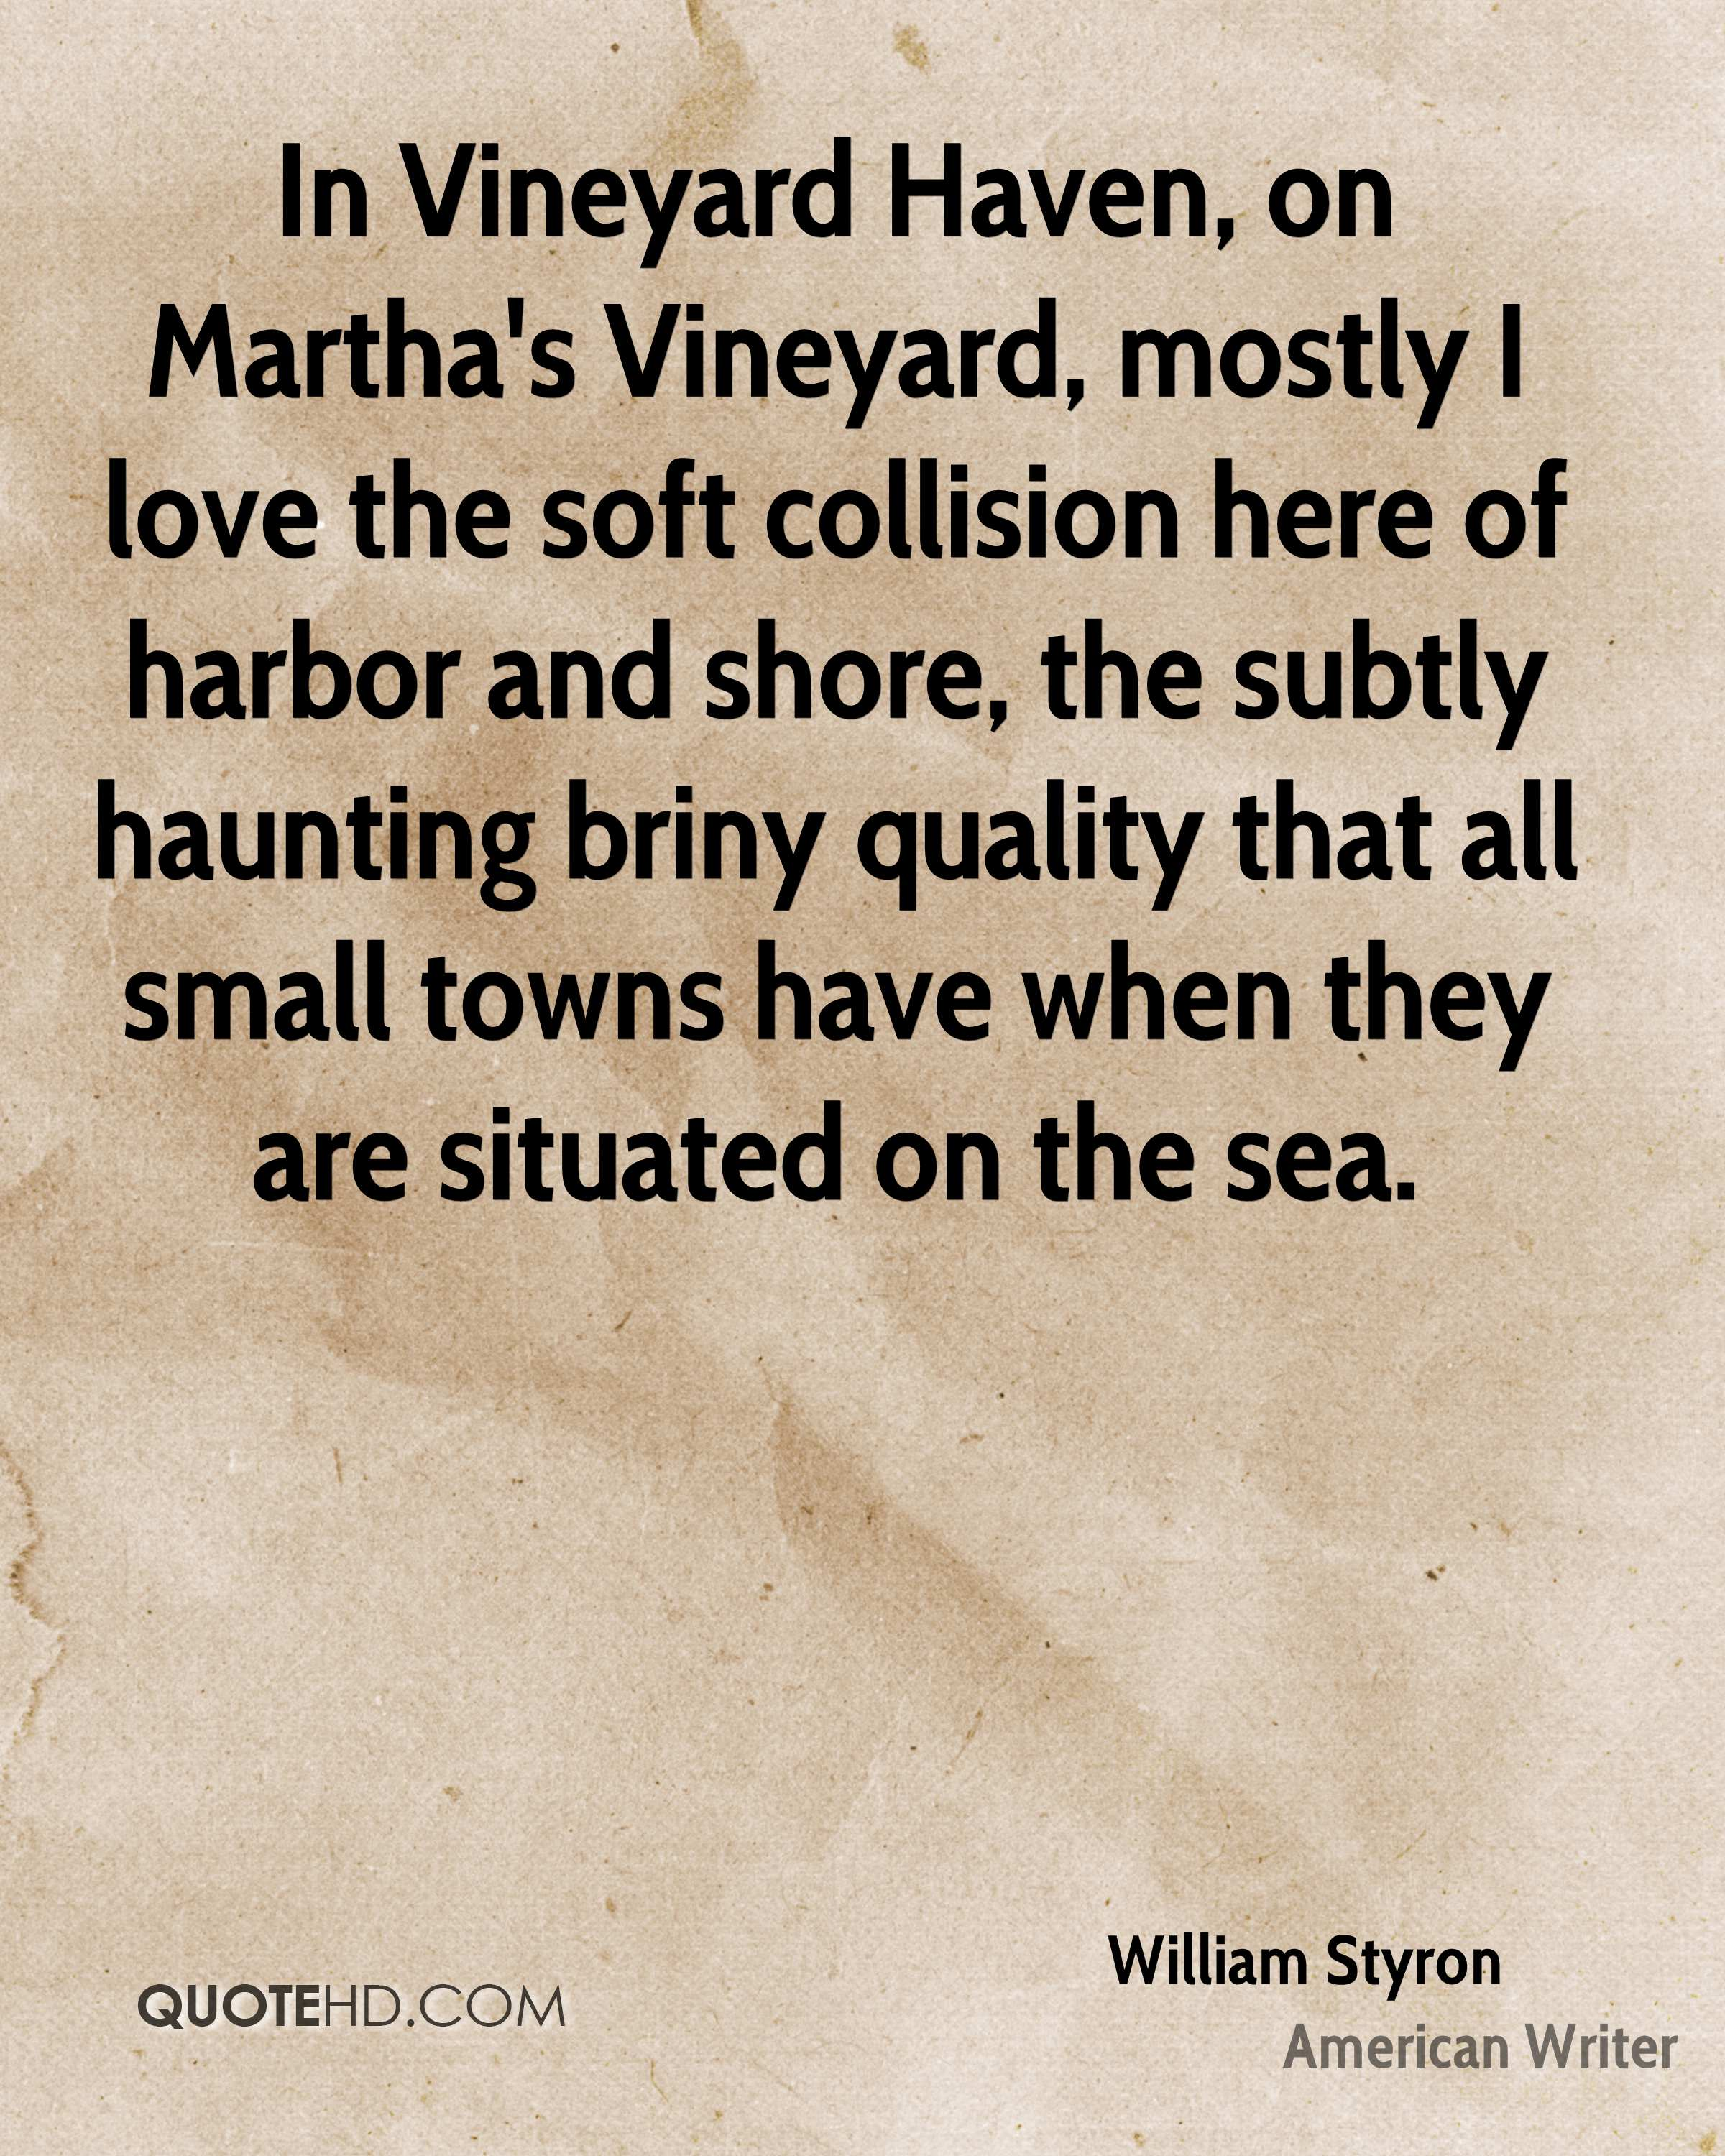 In Vineyard Haven, on Martha's Vineyard, mostly I love the soft collision here of harbor and shore, the subtly haunting briny quality that all small towns have when they are situated on the sea.